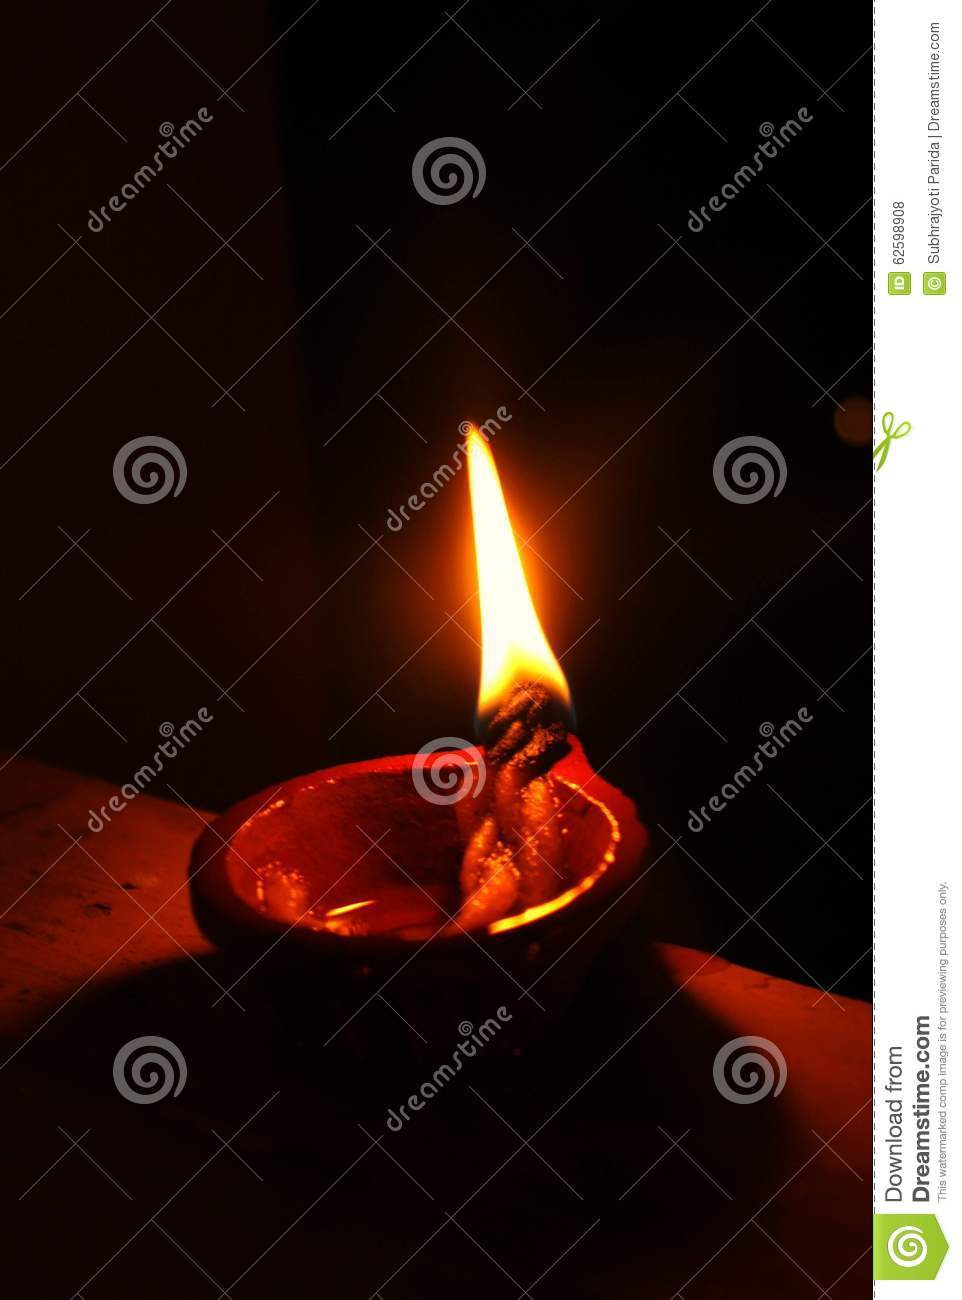 Brightly Lit Earthen Lamp During Diwali Stock Photo - Image of flame ... for Earthen Lamp Clipart  83fiz